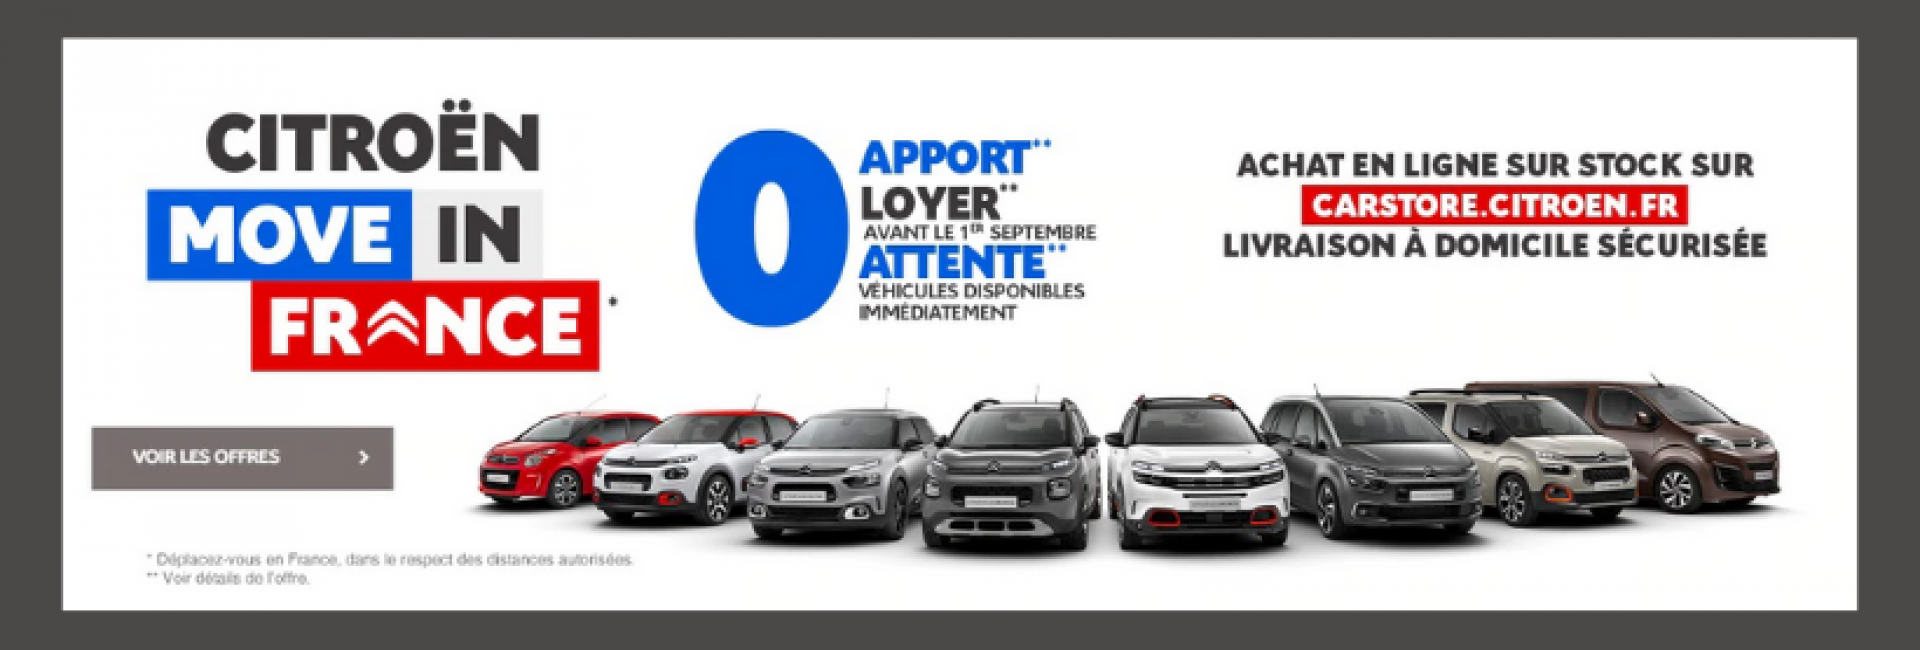 Offre 4 loyers offerts - Move in France - Citroën carstore